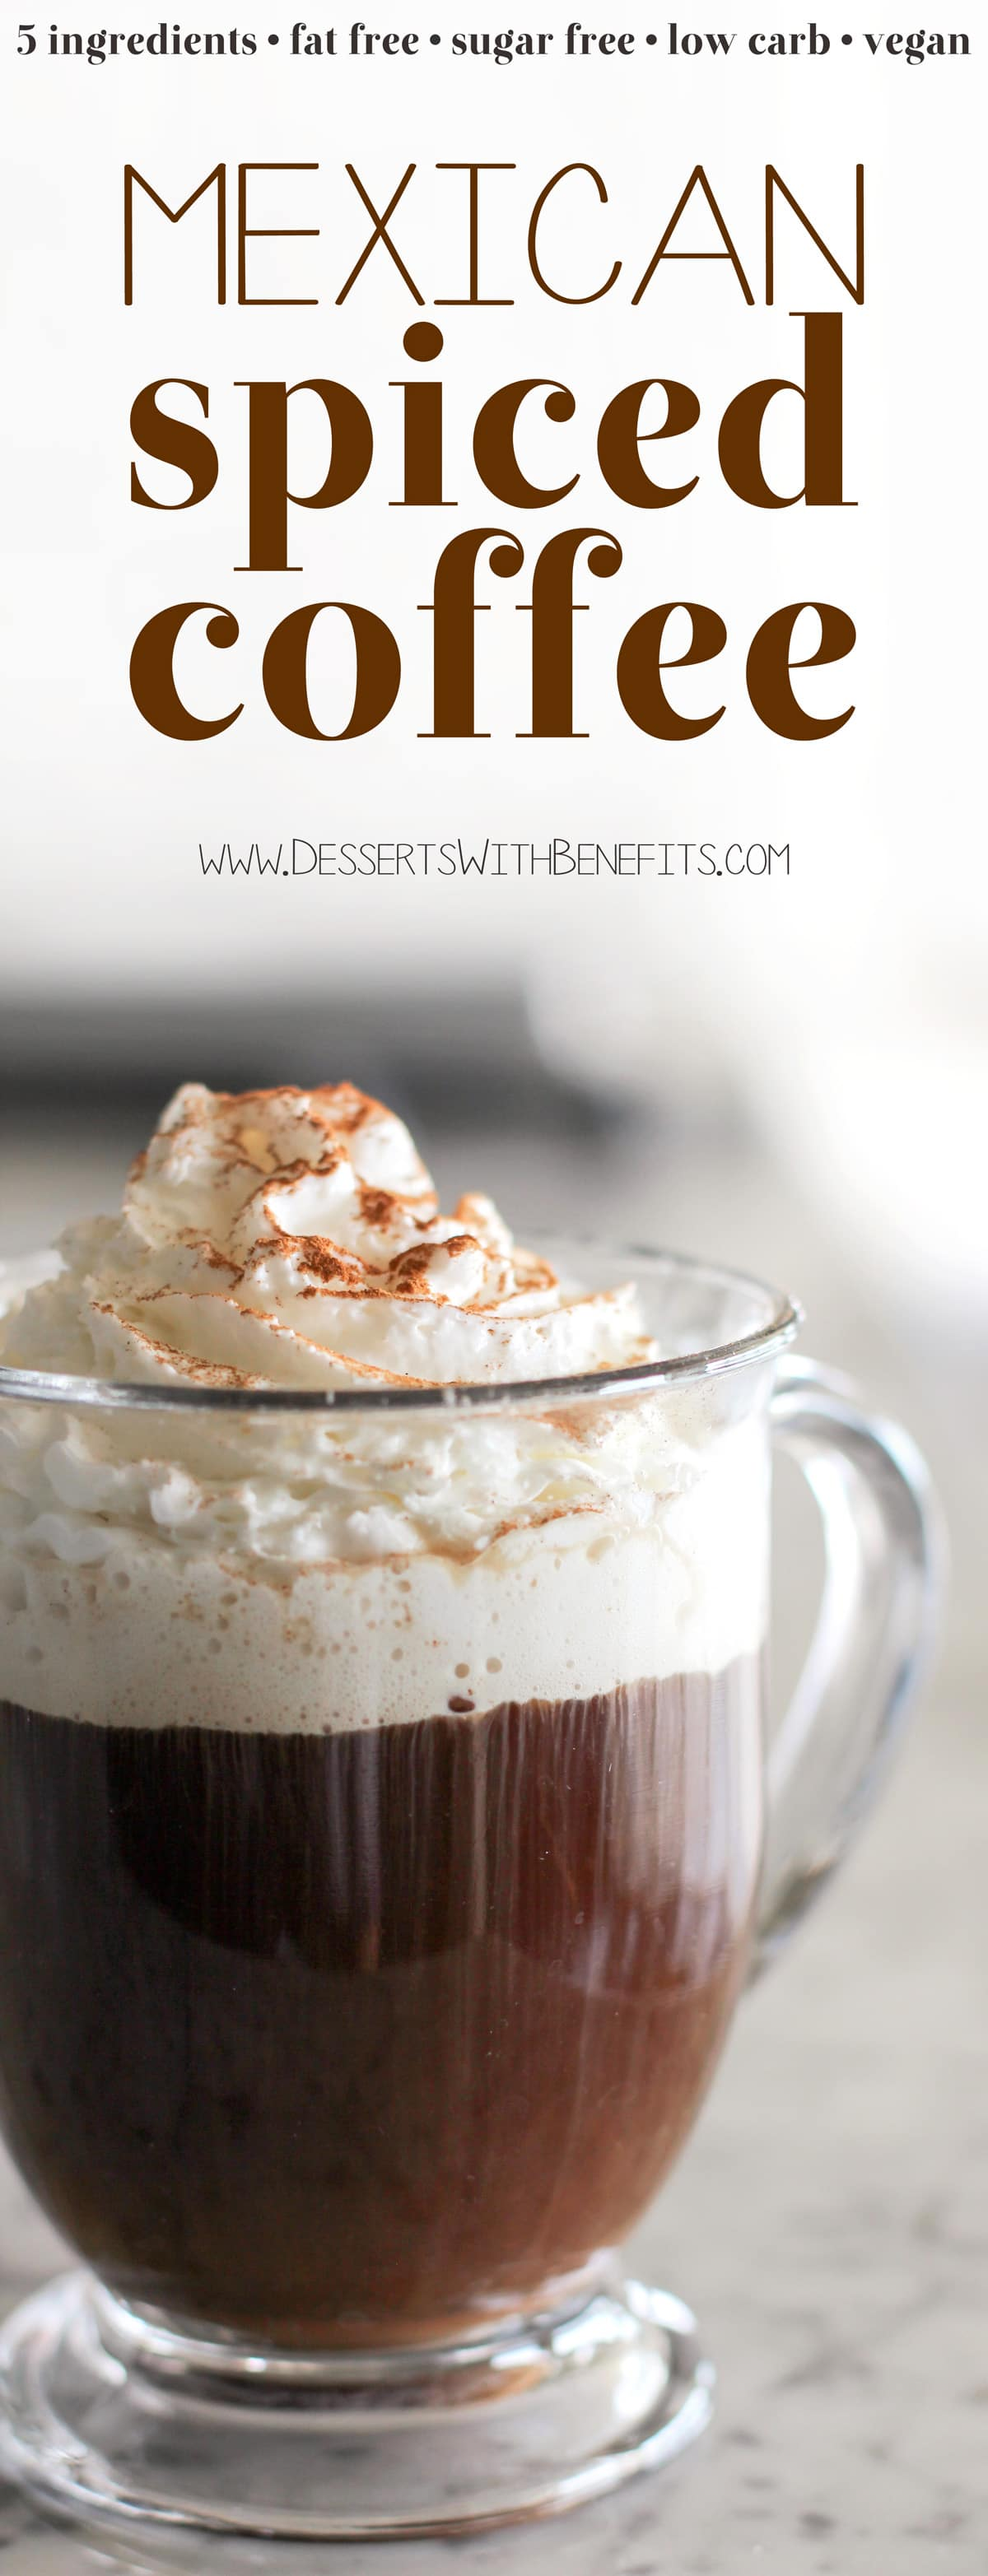 (How to make Mexican Coffee) This 5-ingredient Healthy Mexican Spiced Coffee is made without the sugar and cream but tastes just as good as the original. You'd never know it's zero calorie, fat free, sugar free, low carb, gluten free, and vegan! Healthy Dessert Recipes with low calorie, low fat, high protein, gluten free, dairy free, vegan, and raw options at the Desserts With Benefits Blog (www.DessertsWithBenefits.com)